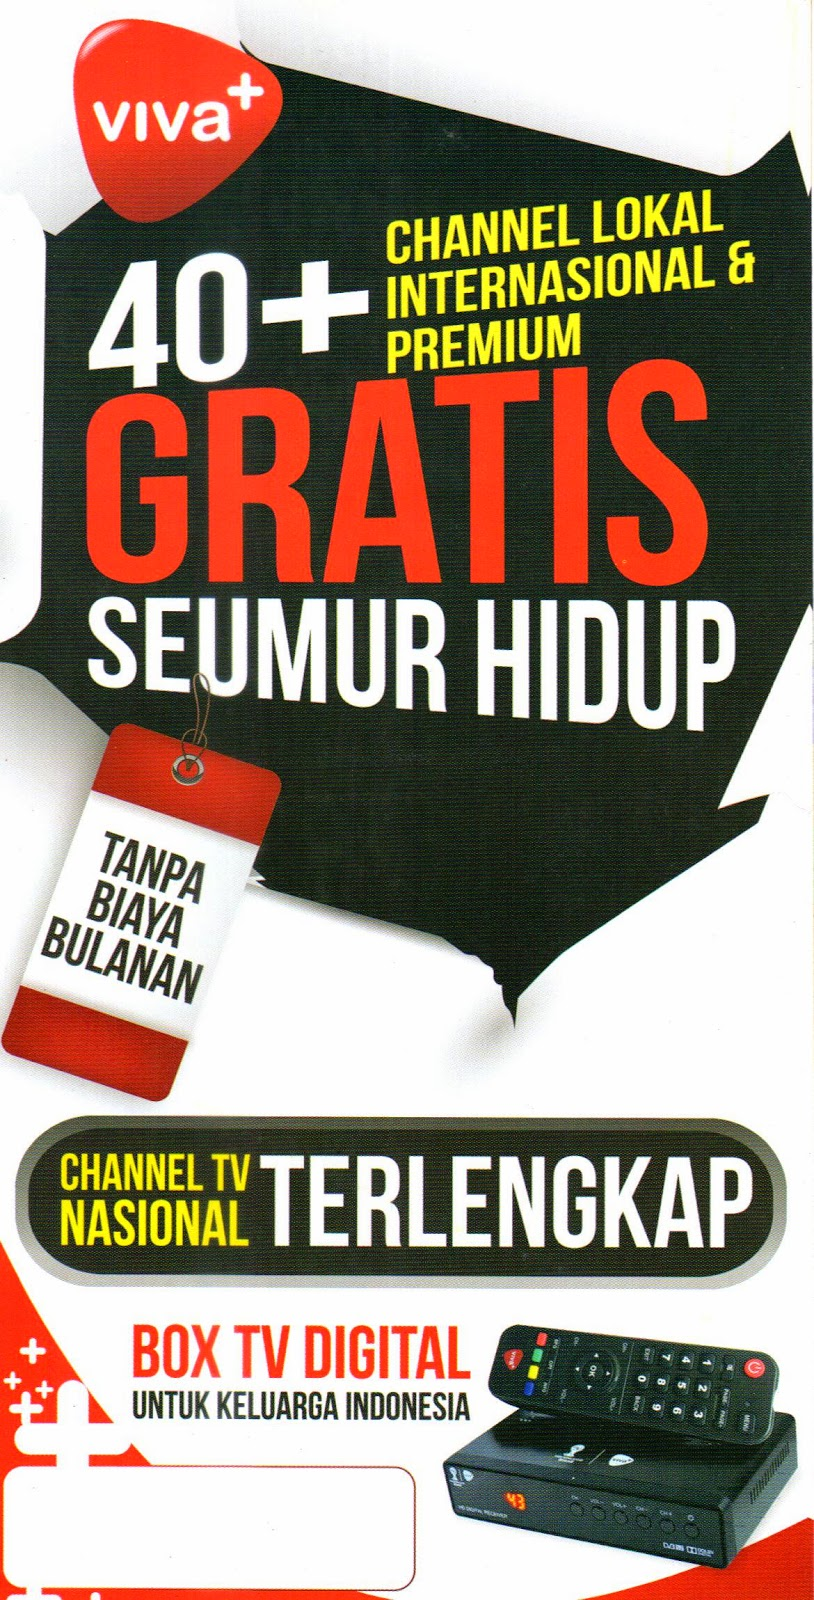 brosur parabola viva + plus channel tv nasional terlengkap